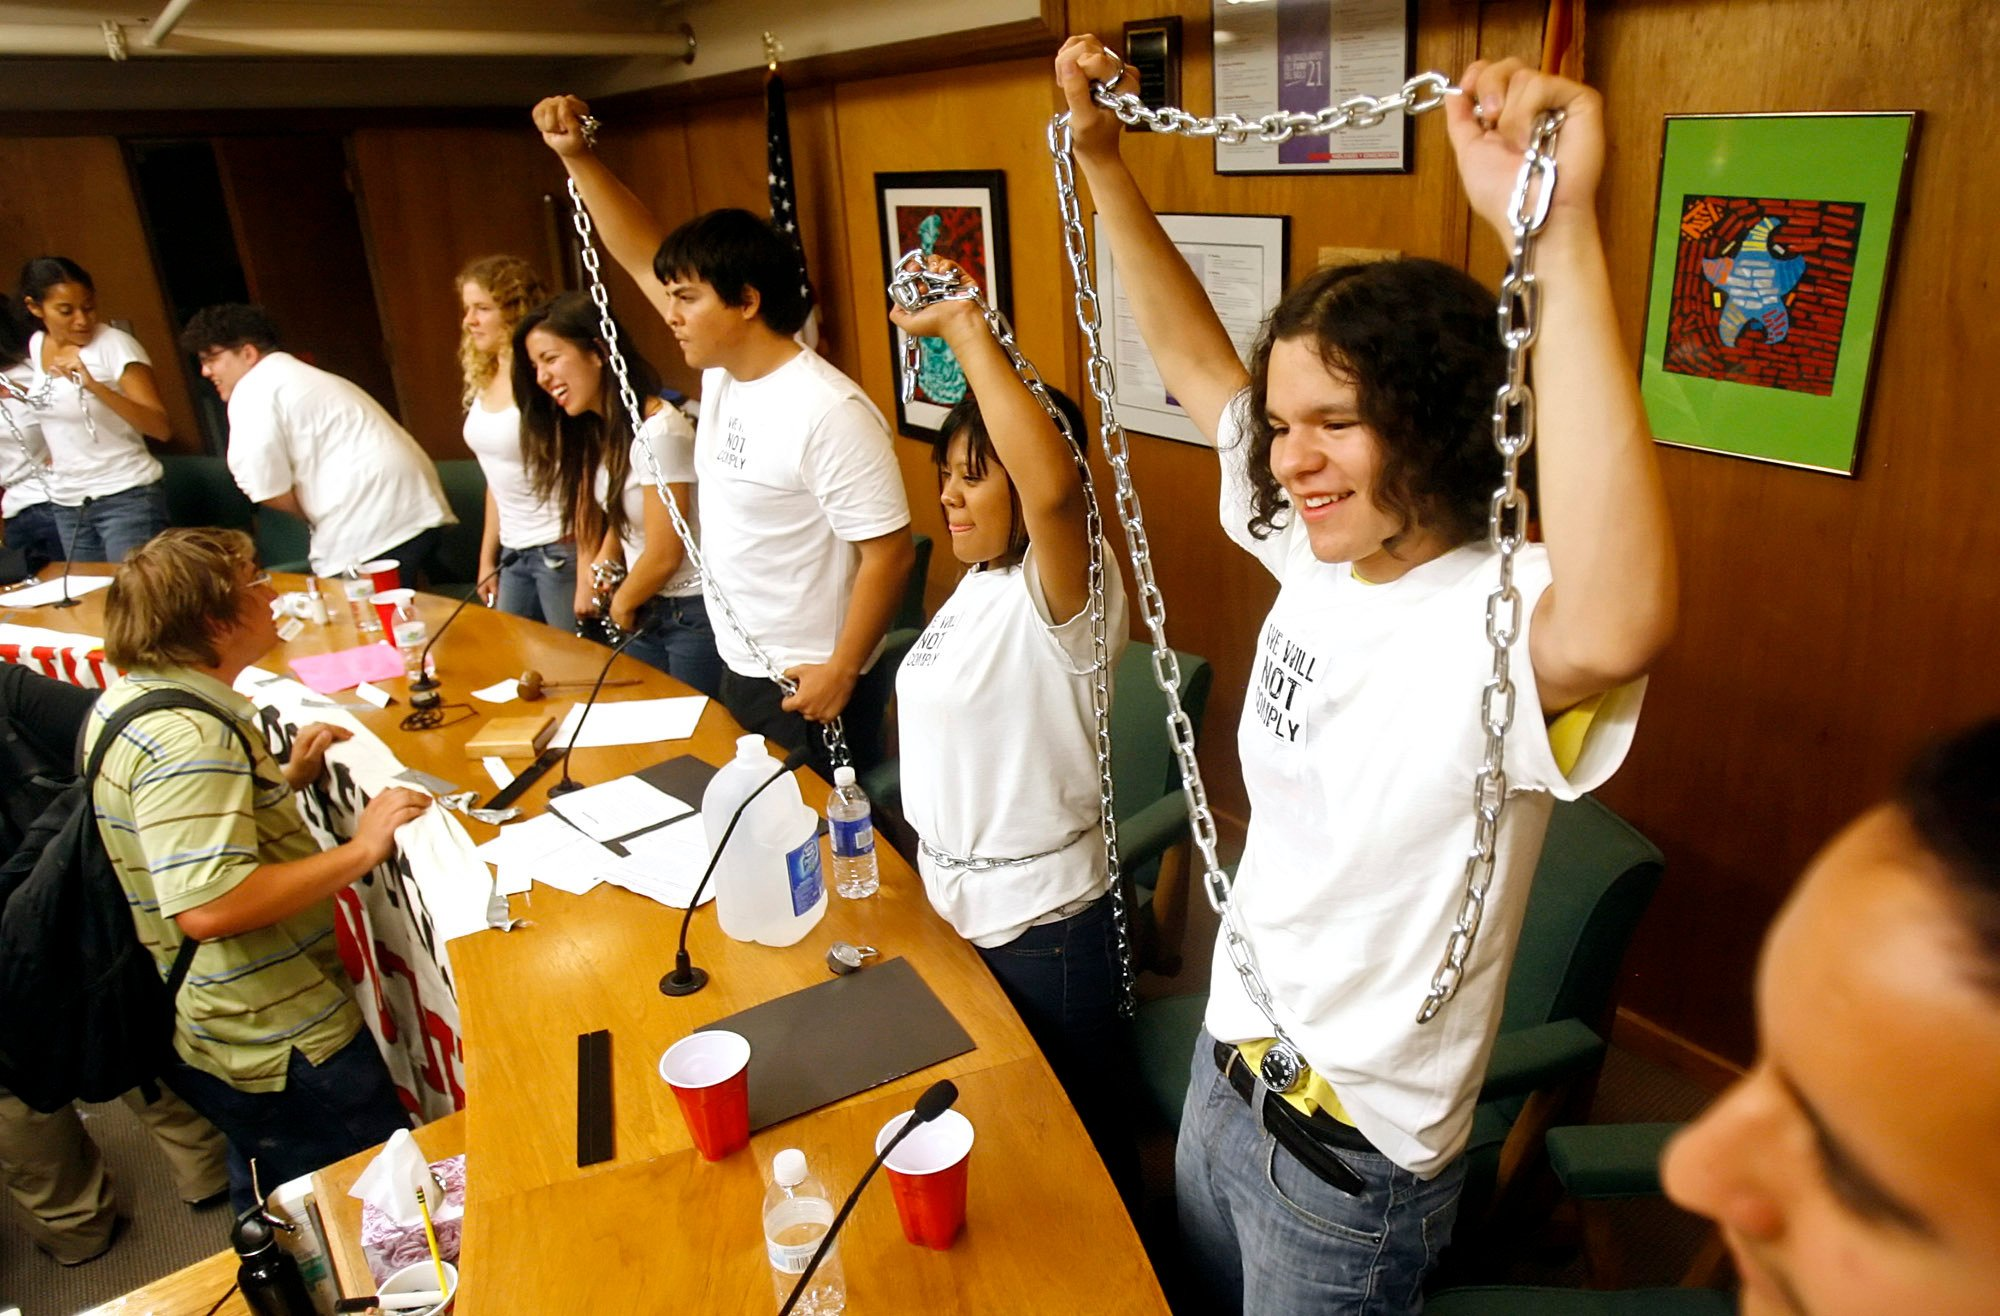 What Arizona's 2010 Ban on Ethnic Studies Could Mean for the Fight Over Critical Race Theory